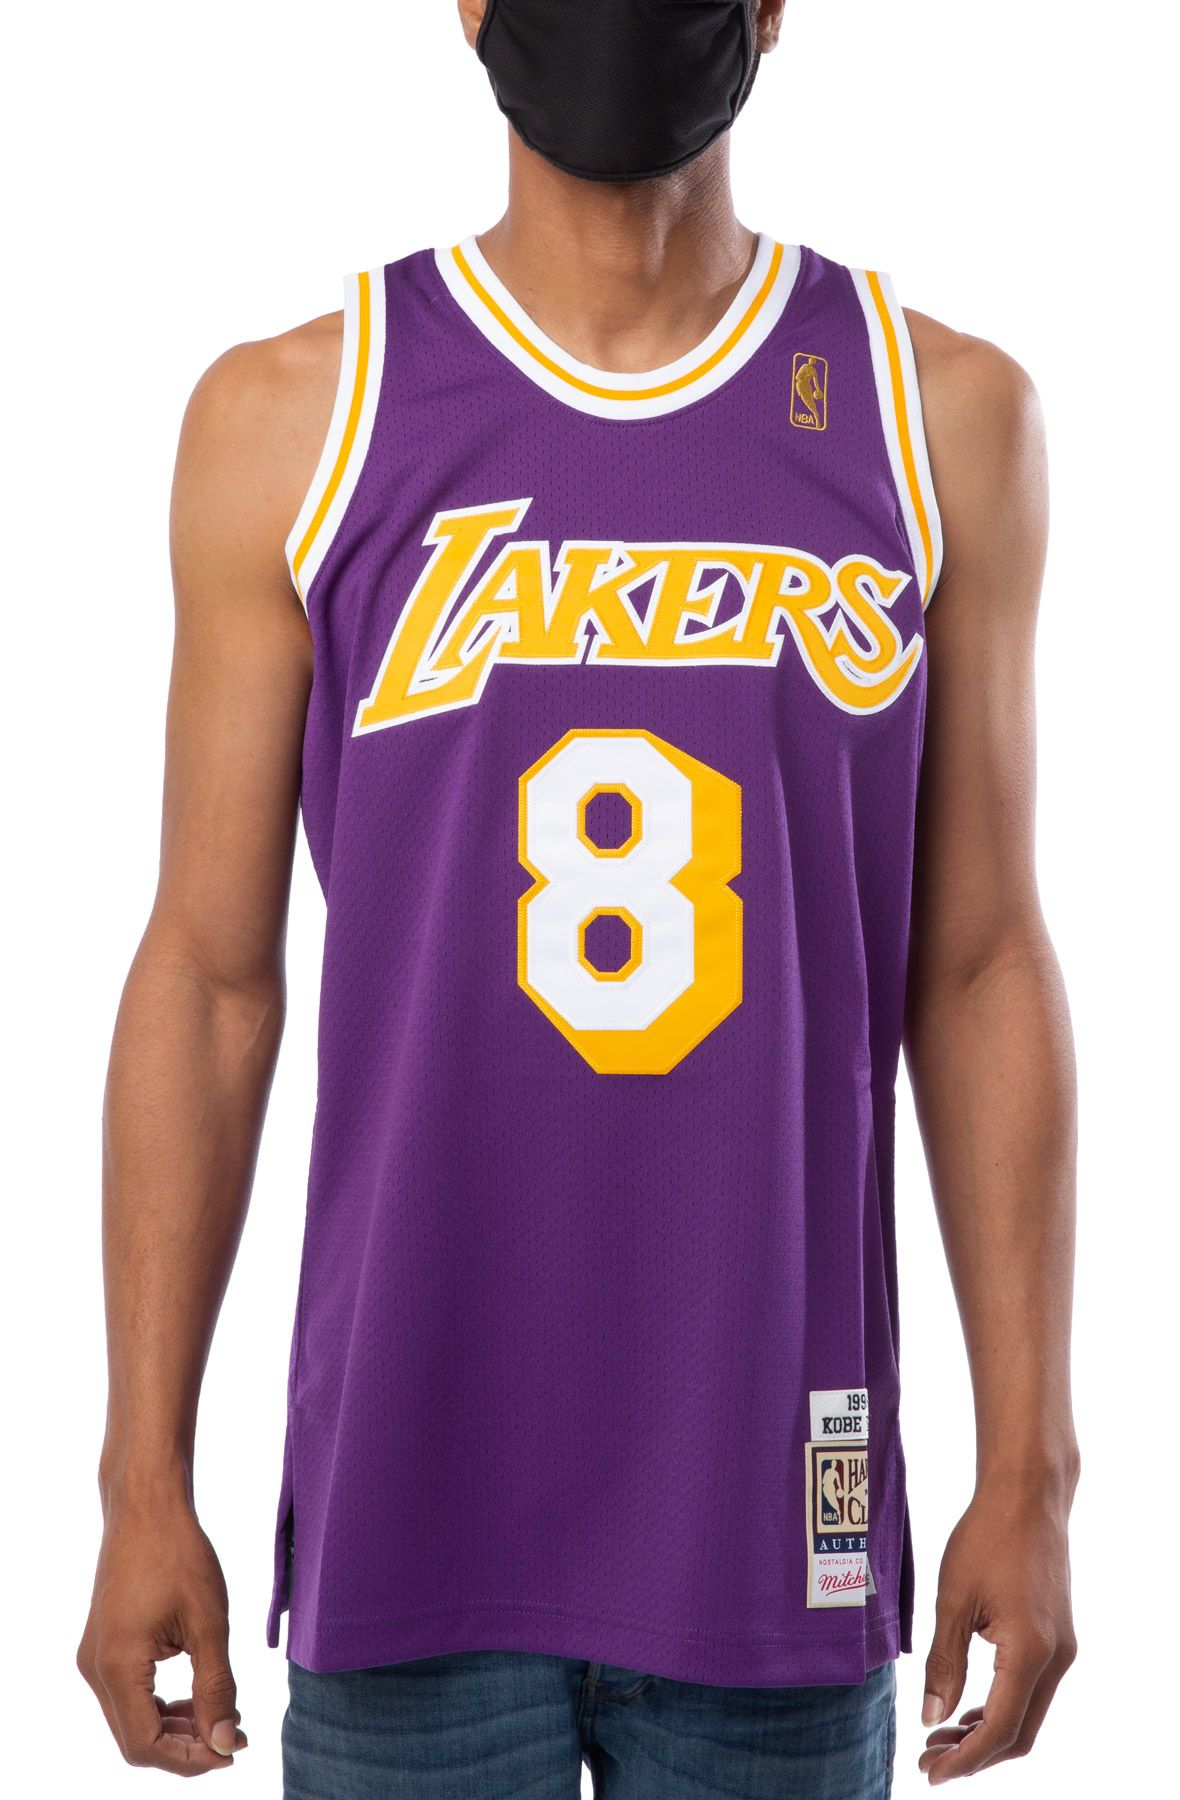 LOS ANGELES LAKERS KOBE BRYANT 1996-97 AUTHENTIC ROAD JERSEY